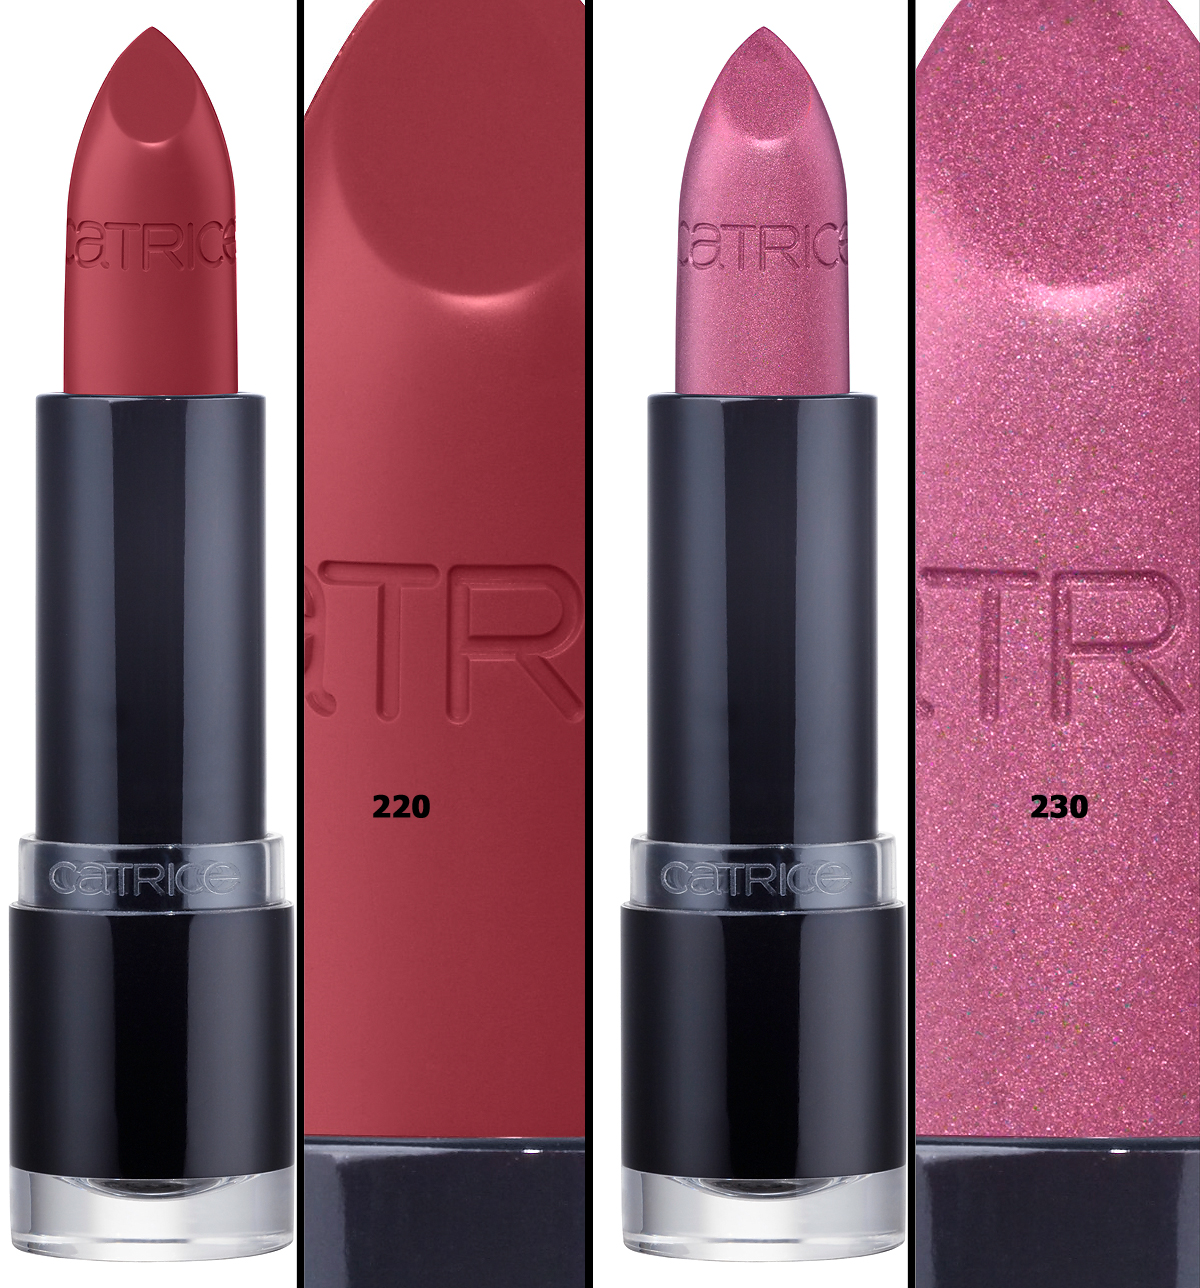 CATRICE Ultimate Colour – Lip Colour